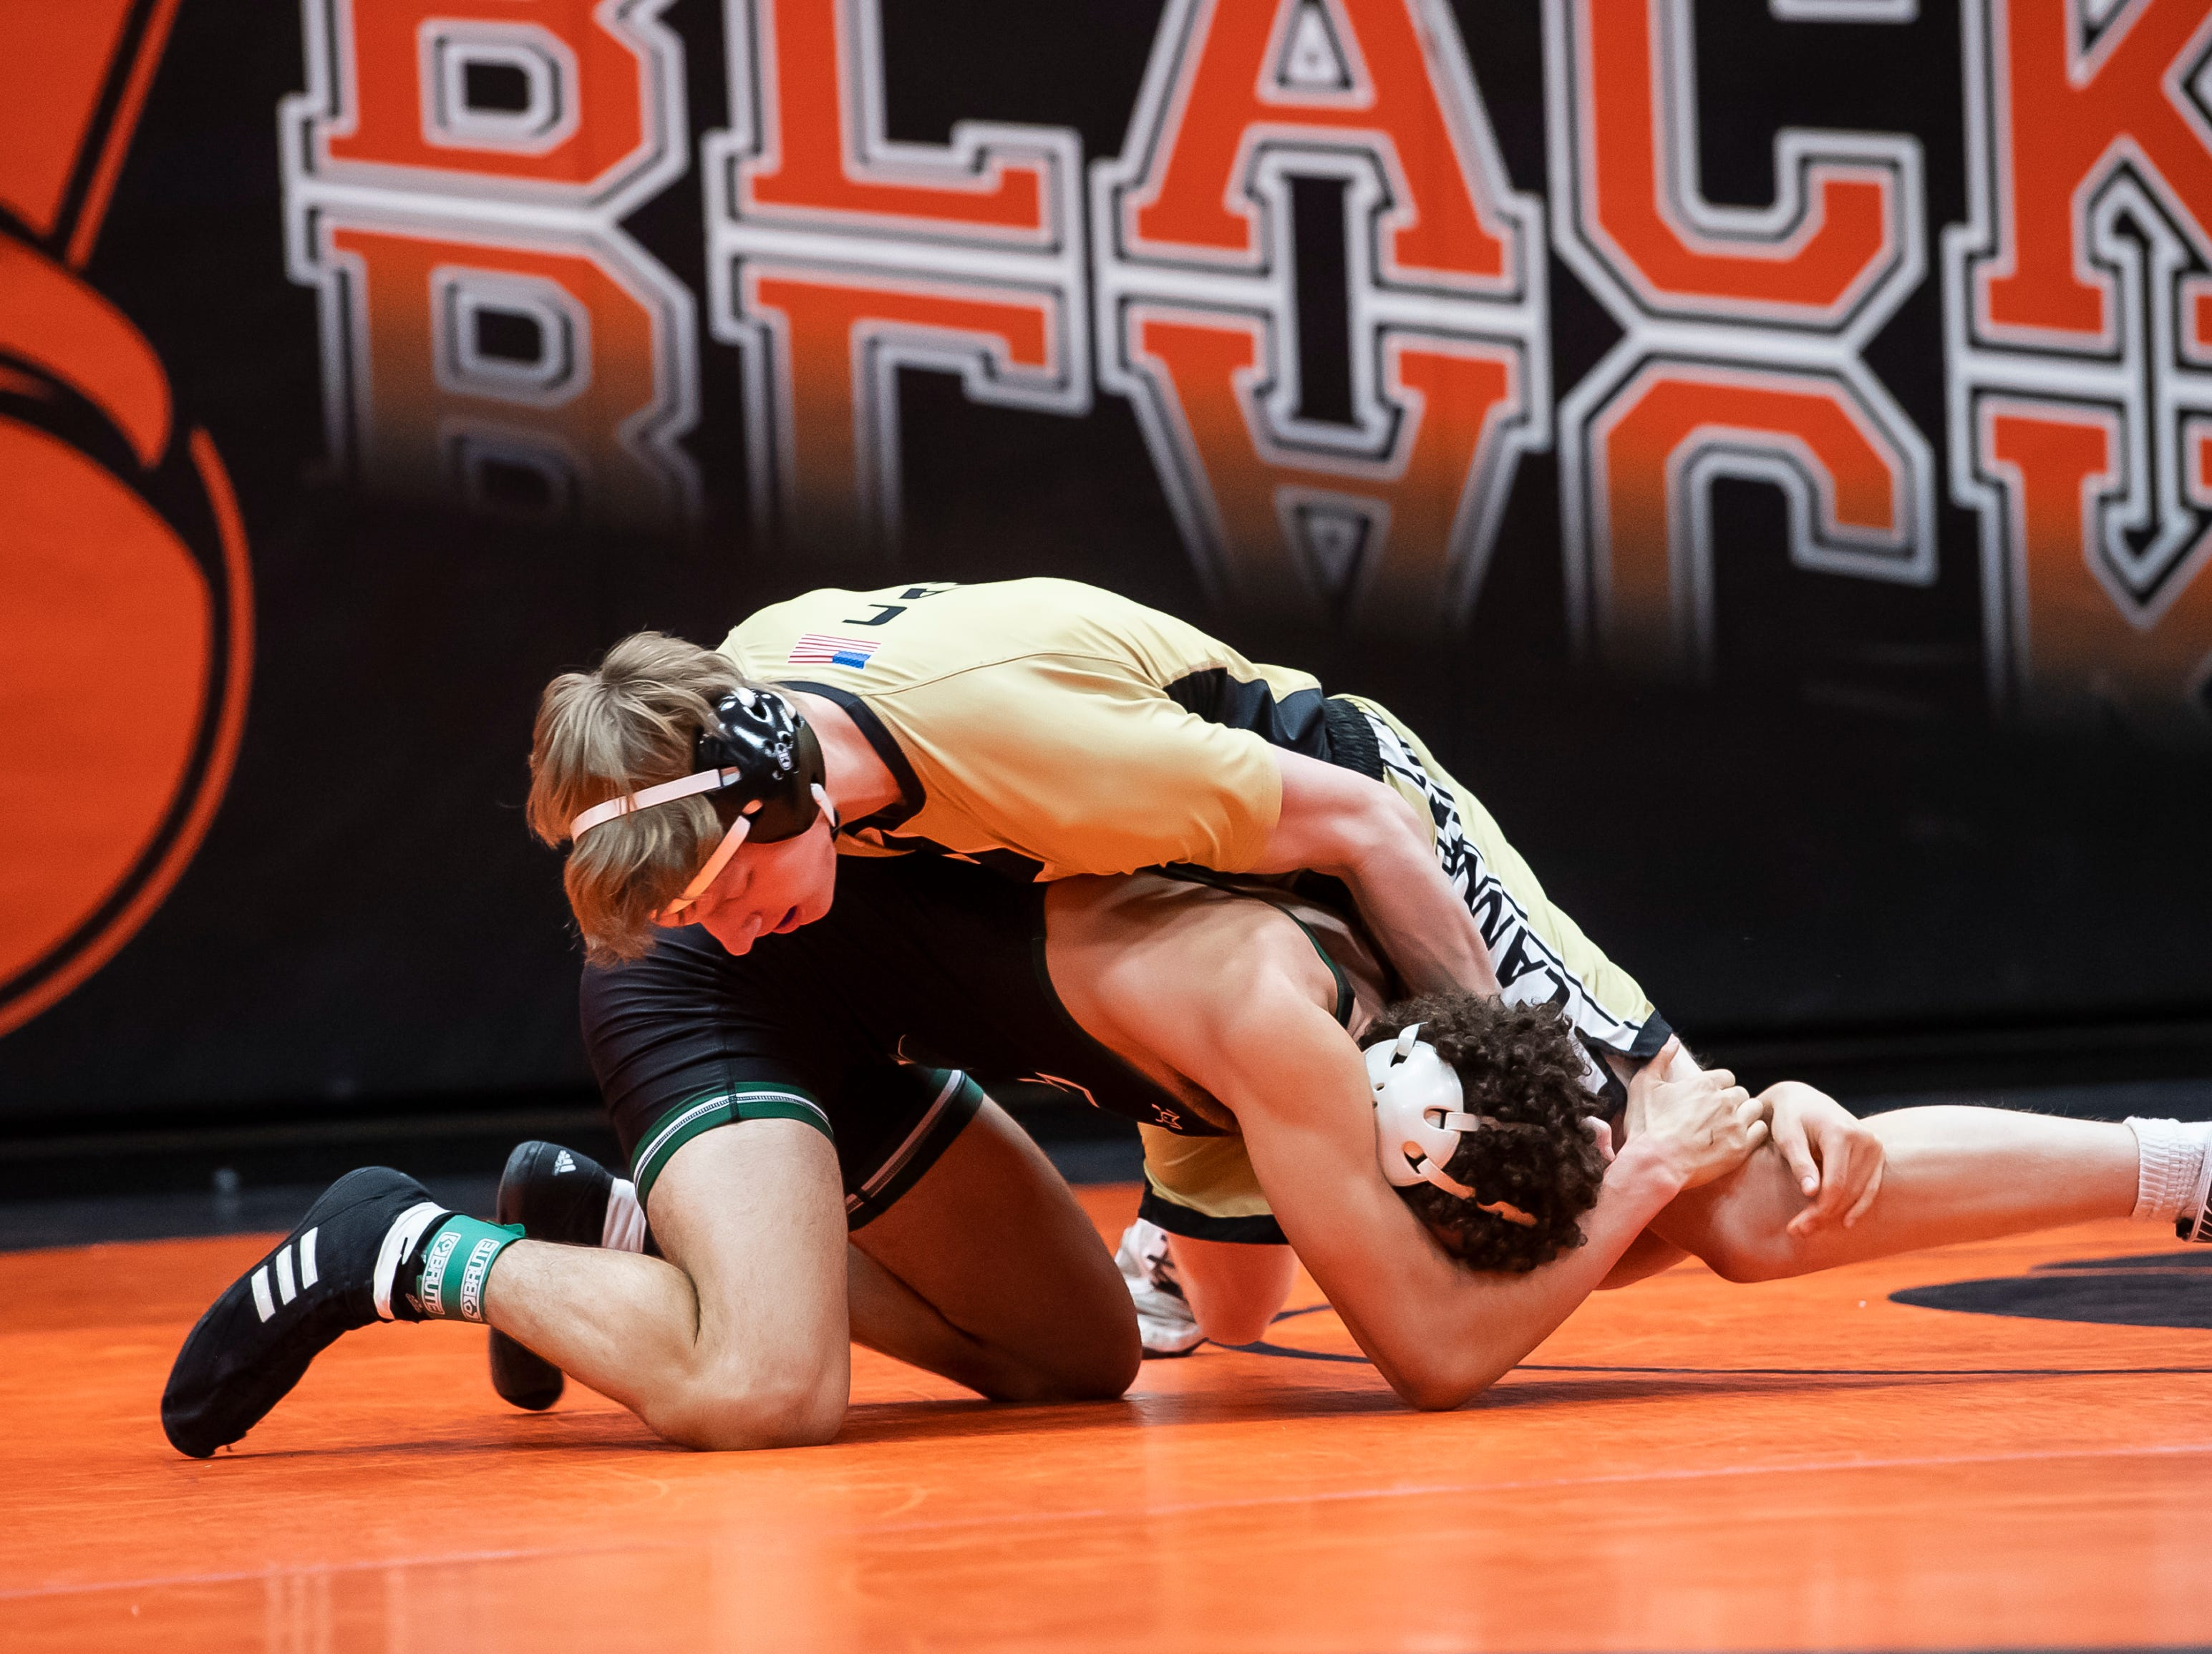 Biglerville's Tristan Metzger, top, wrestles Trinity's Makoa Neibel during a 160-pound bout during the first day of the District 3 Class 2A Section I tournament at Susquenita High School Friday, February 15, 2019. Neibel won by fall.